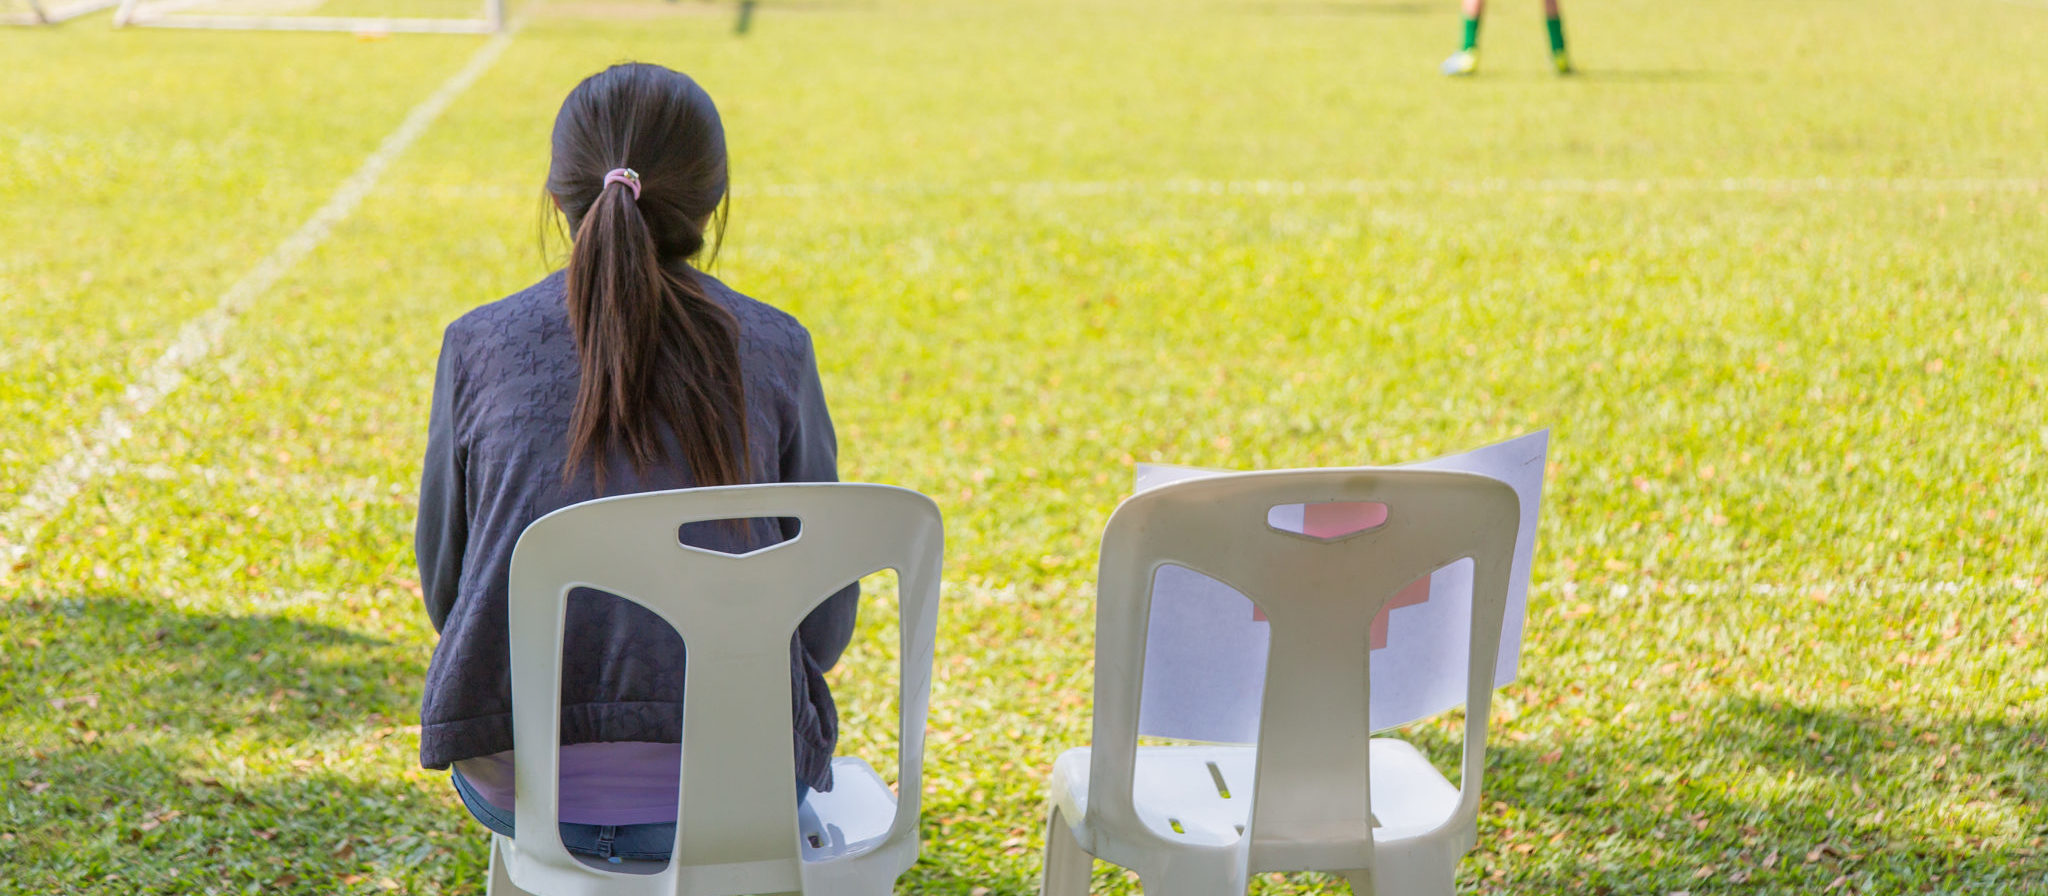 You don't want to find yourself stuck in an uncomfortable and flimsy plastic chair that leaves you feeling sore after just an hour or two of watching your little one's time on the field.